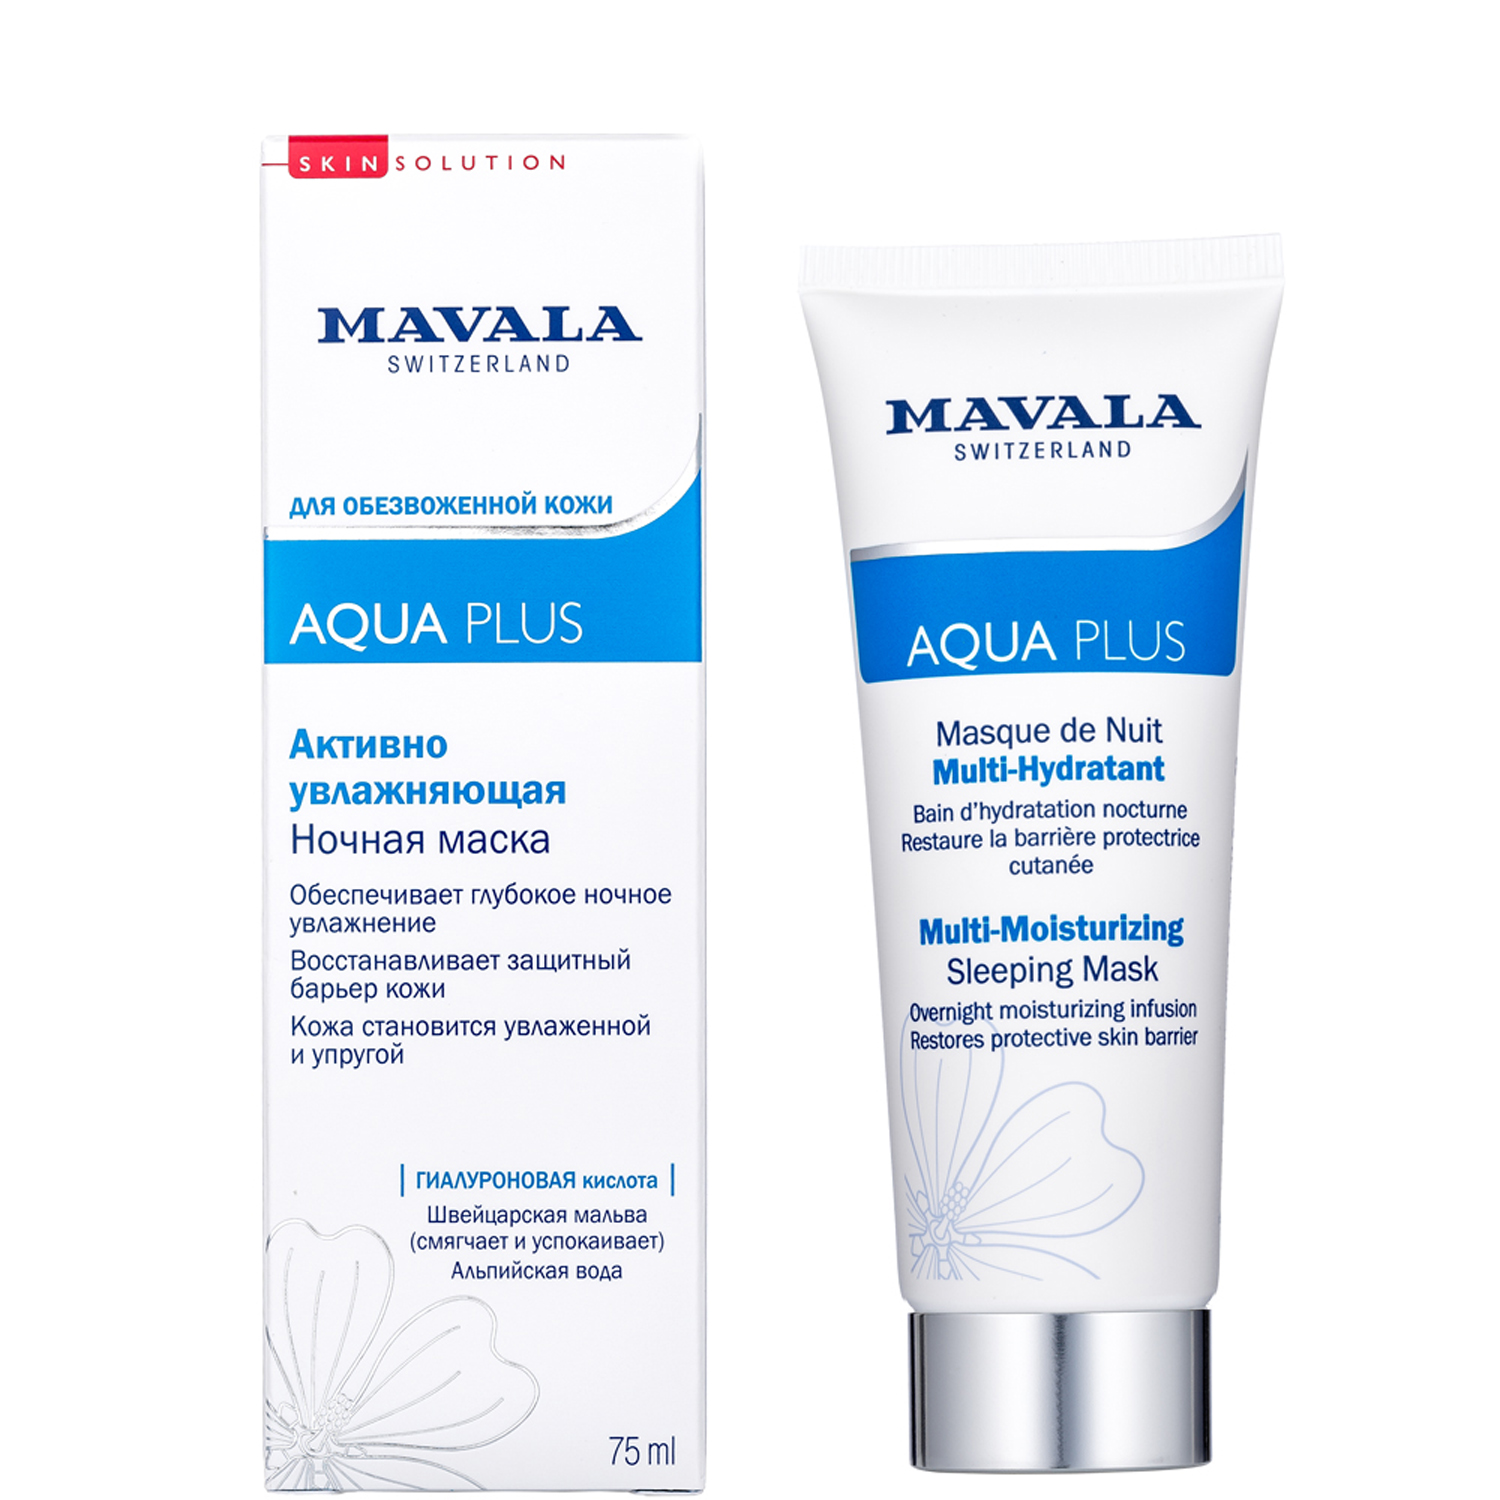 Mavala Активно Увлажняющий Ночная Маска Aqua Plus Multi-Moisturizing Sleeping Mask 75 мл маска elizavecca 3 step aqua white water mask pack